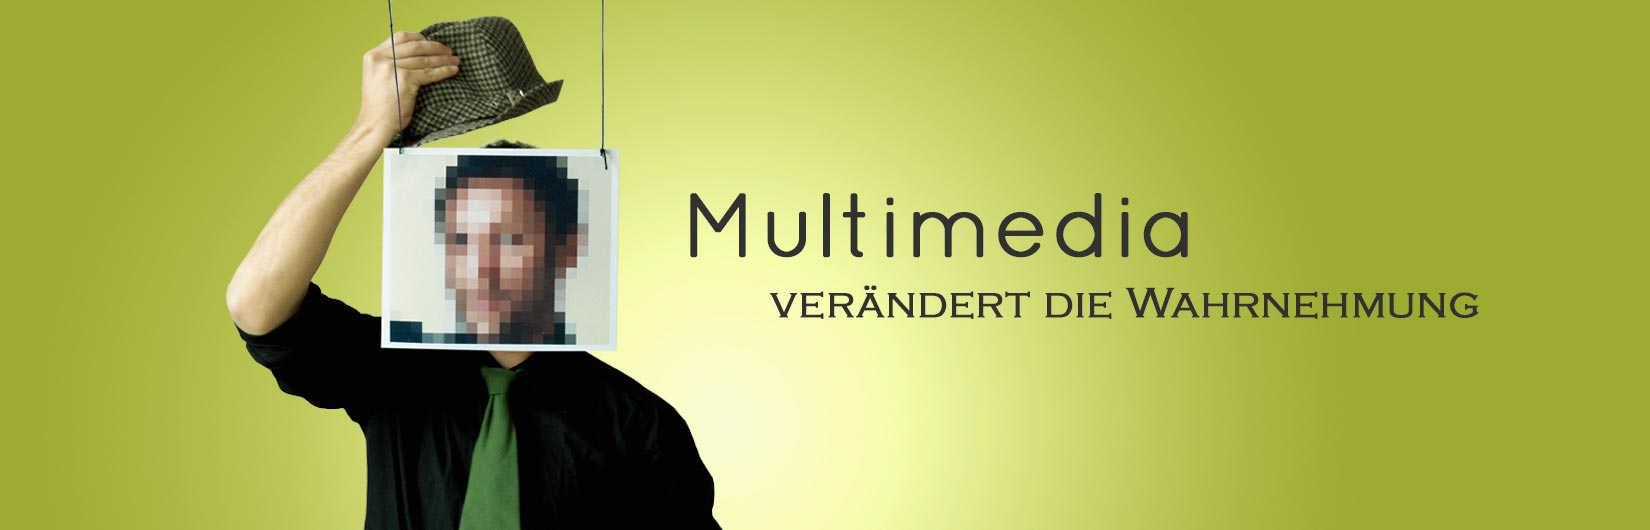 Multimedia-Agentur